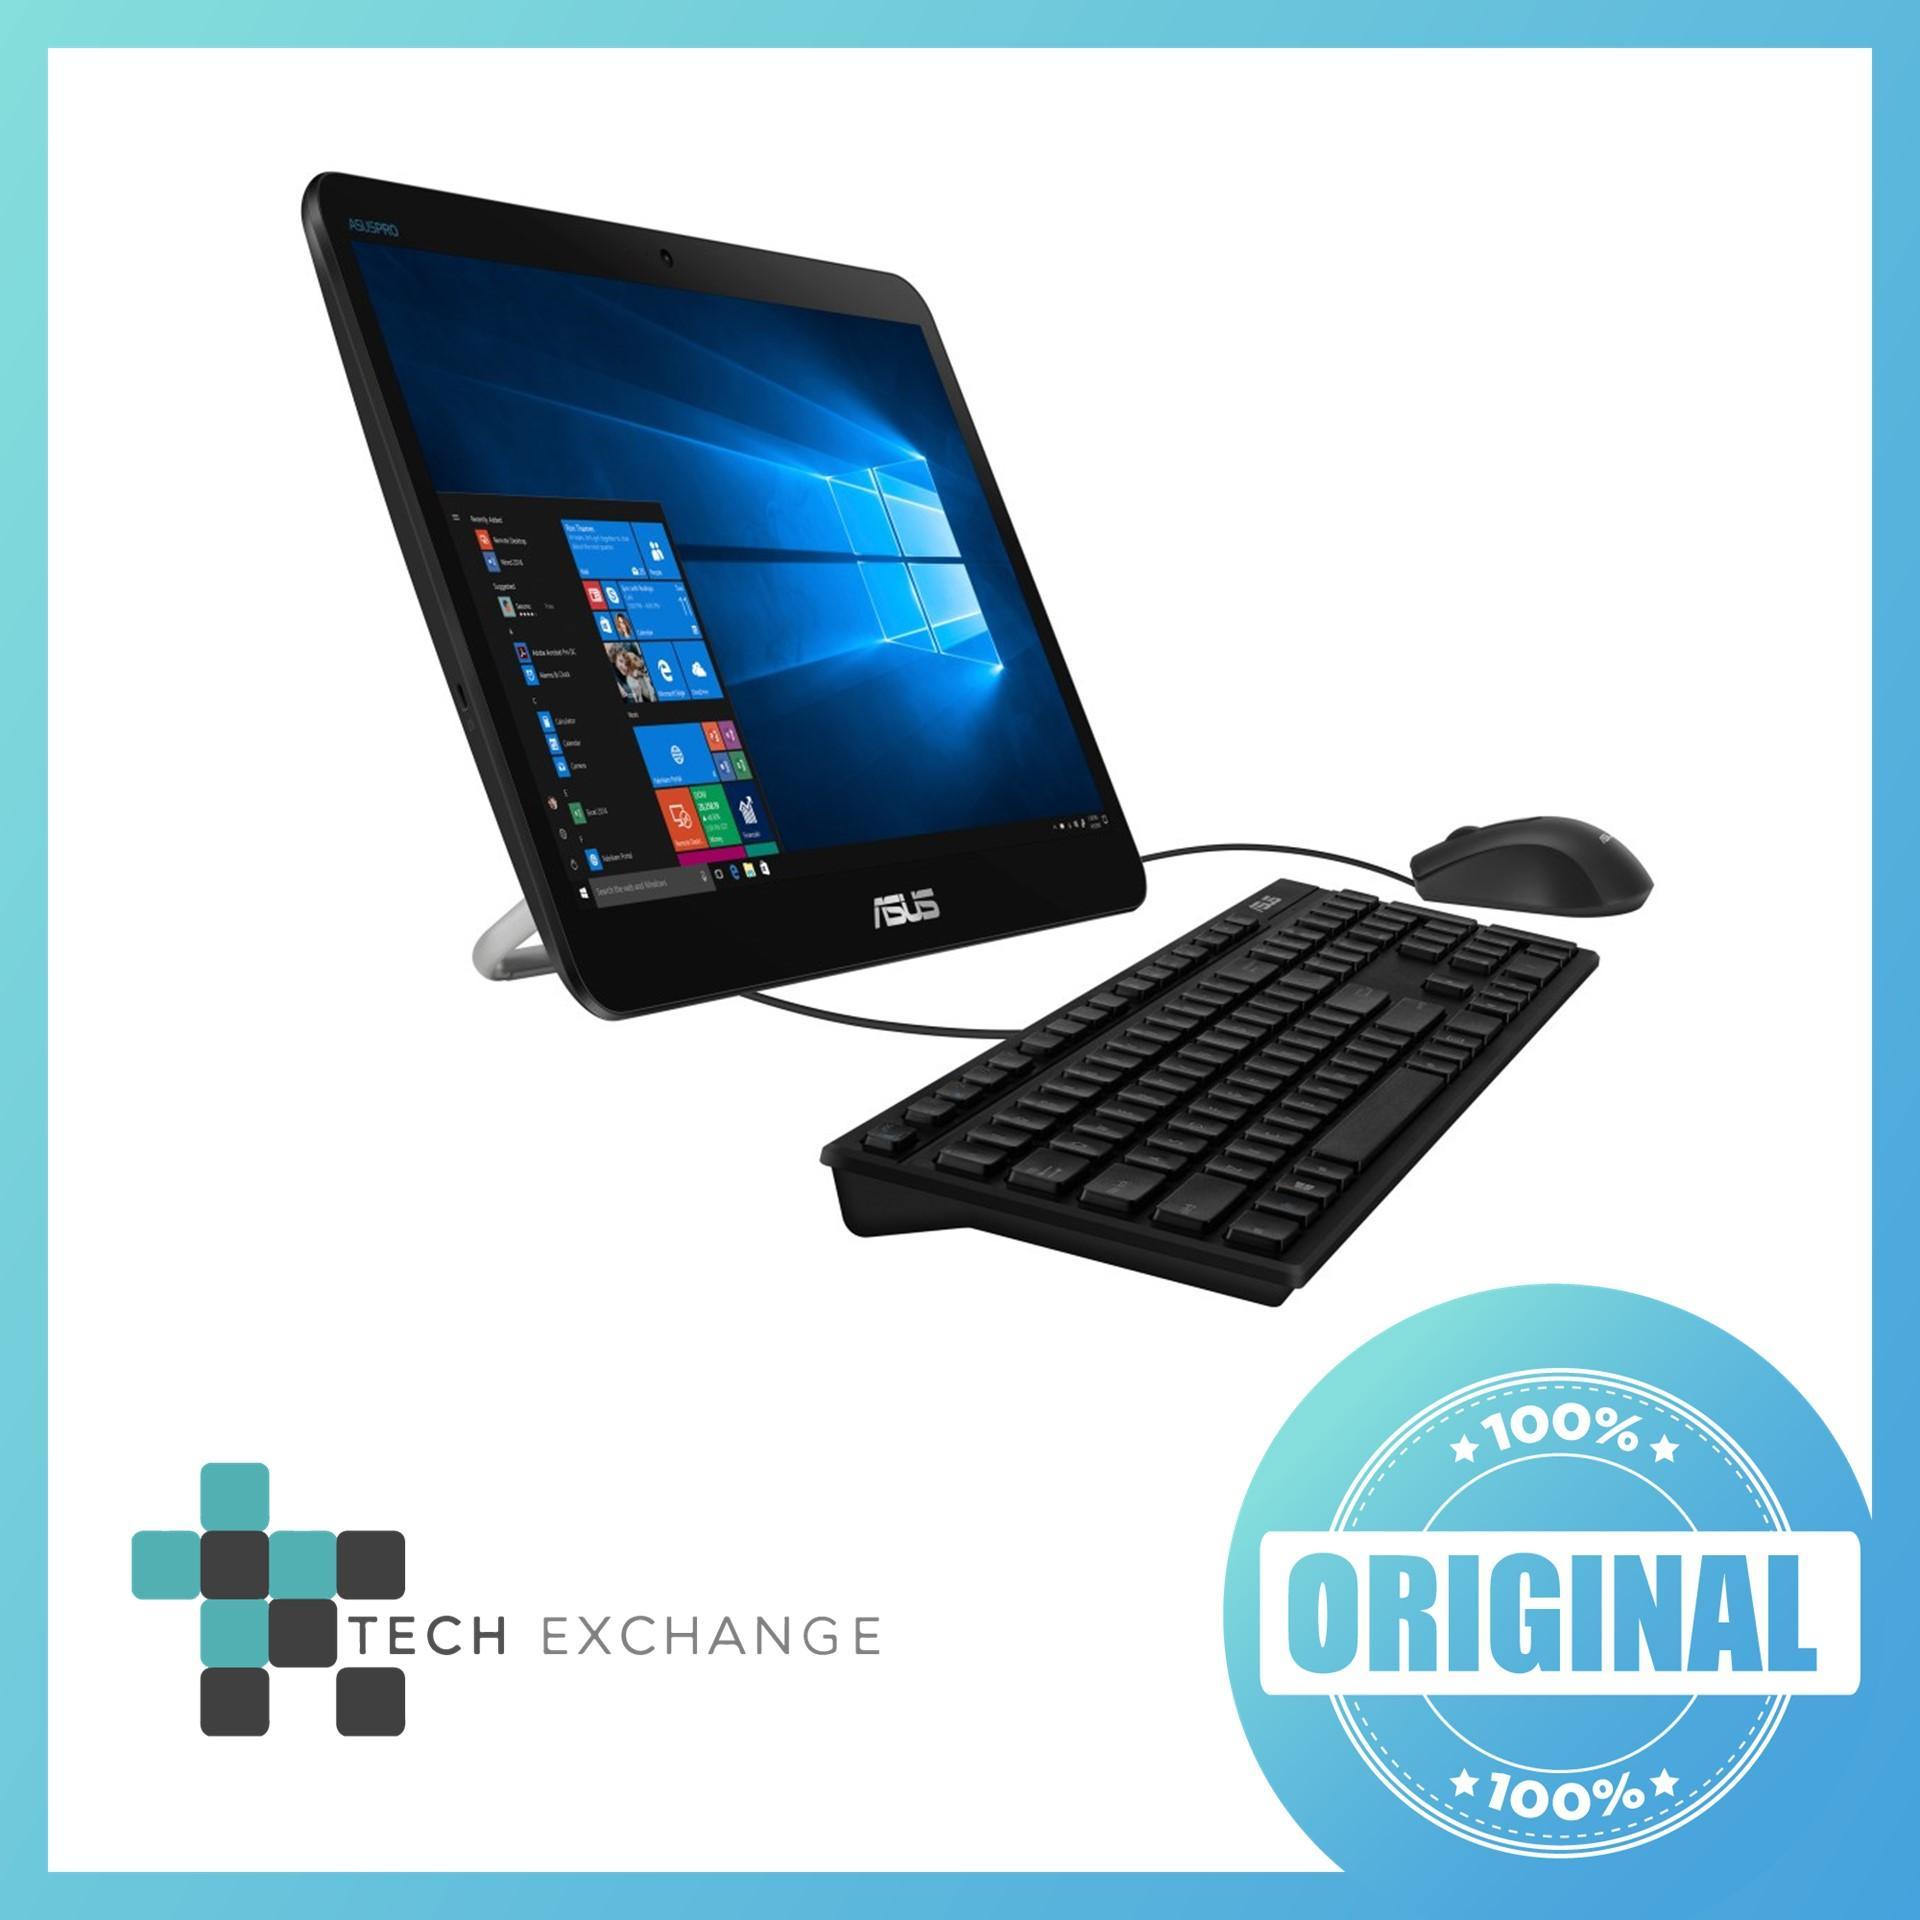 All-in-One Computers for sale - All-in-One Desktops price, brands